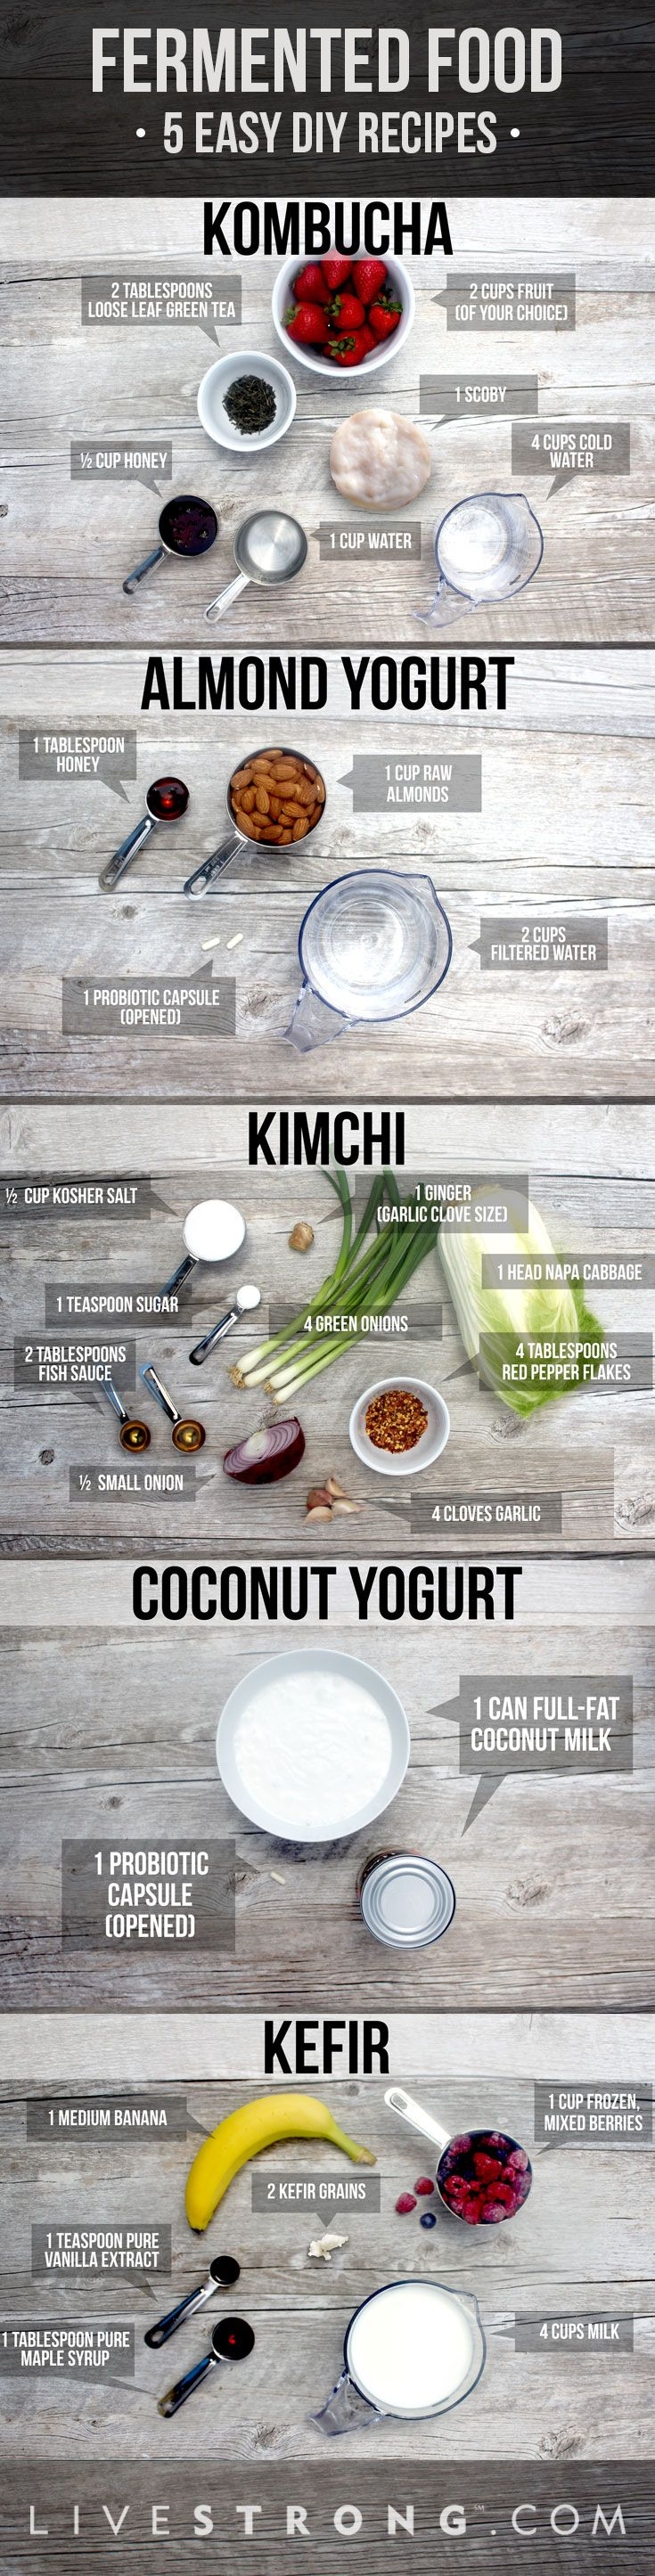 5 super easy fermented food DIY recipes! // In need of a detox? 10% off using our discount code 'Pin10' at www.ThinTea.com.au